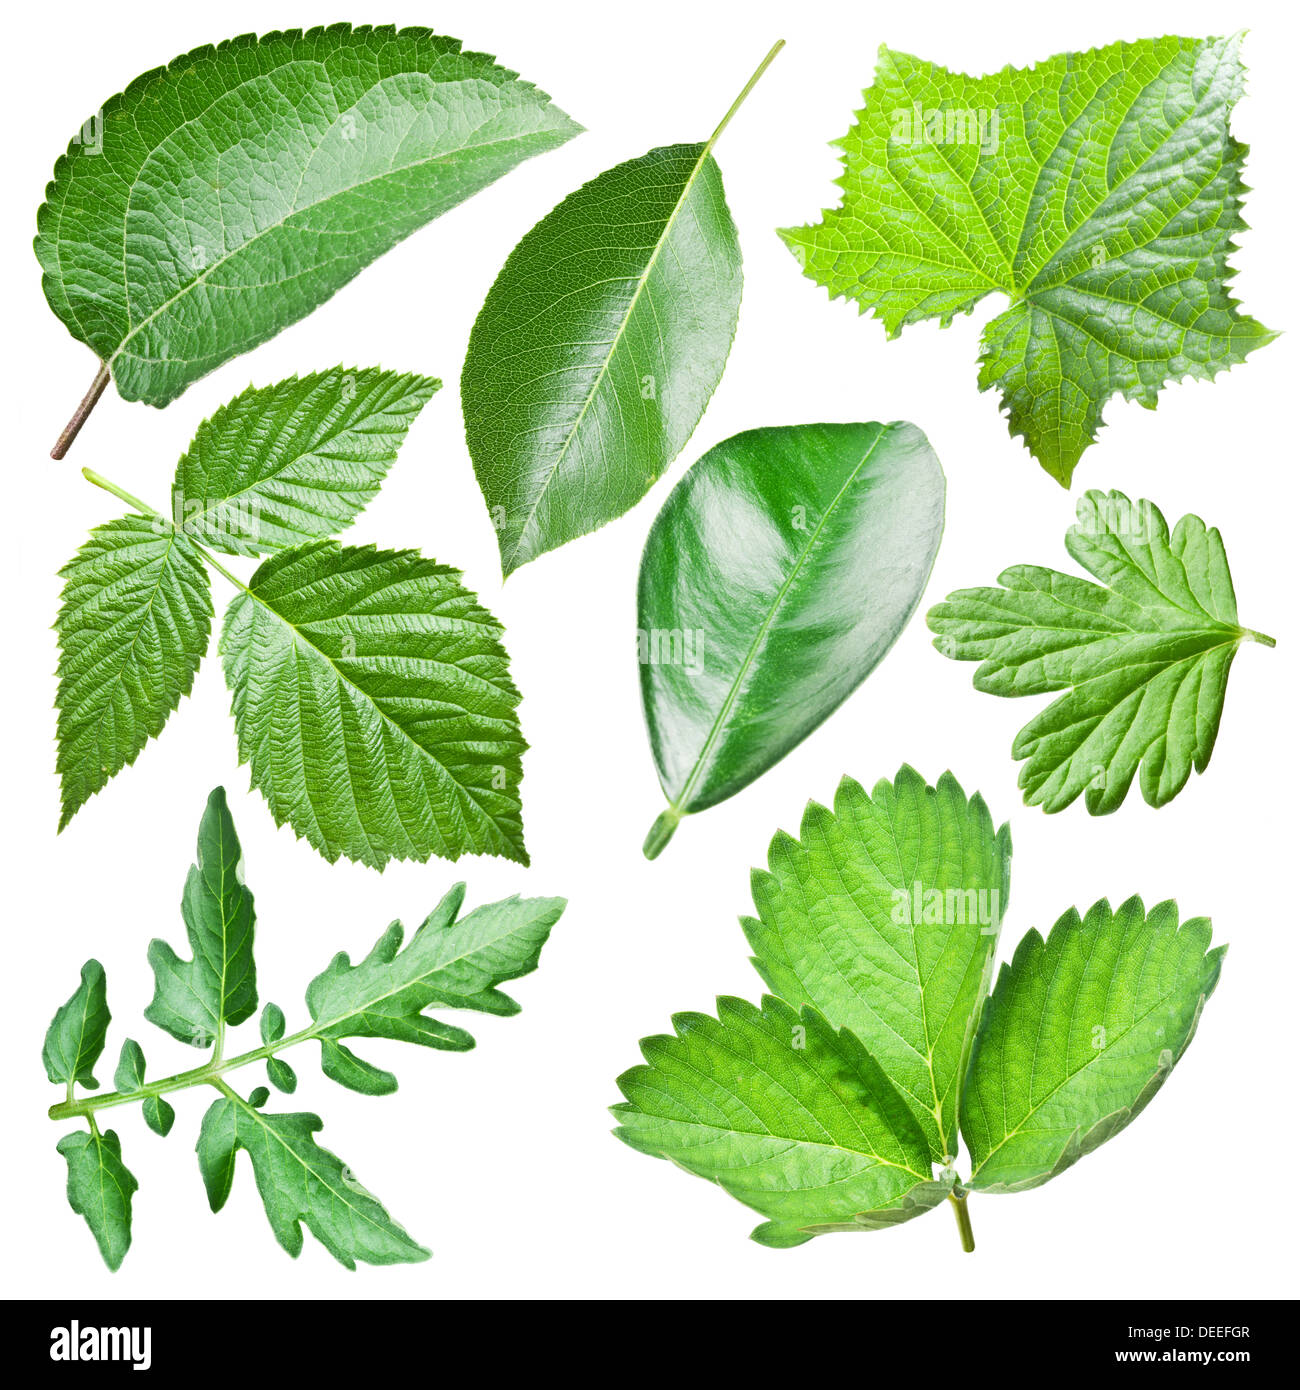 Green leaves collection isolated on a white background. - Stock Image